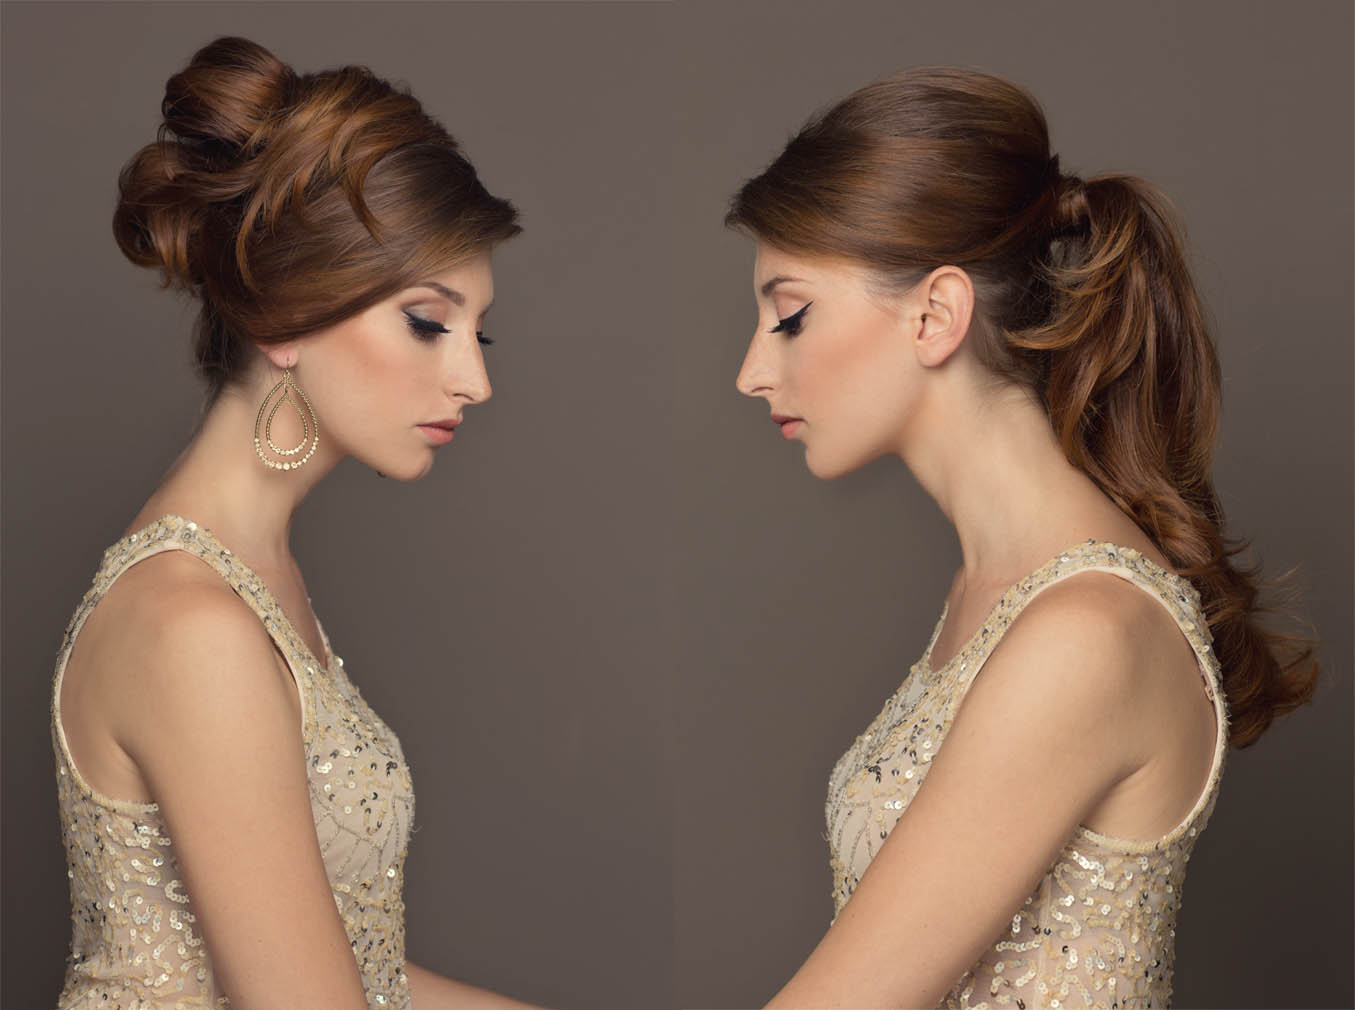 long glamorous ponytail and 60's hair